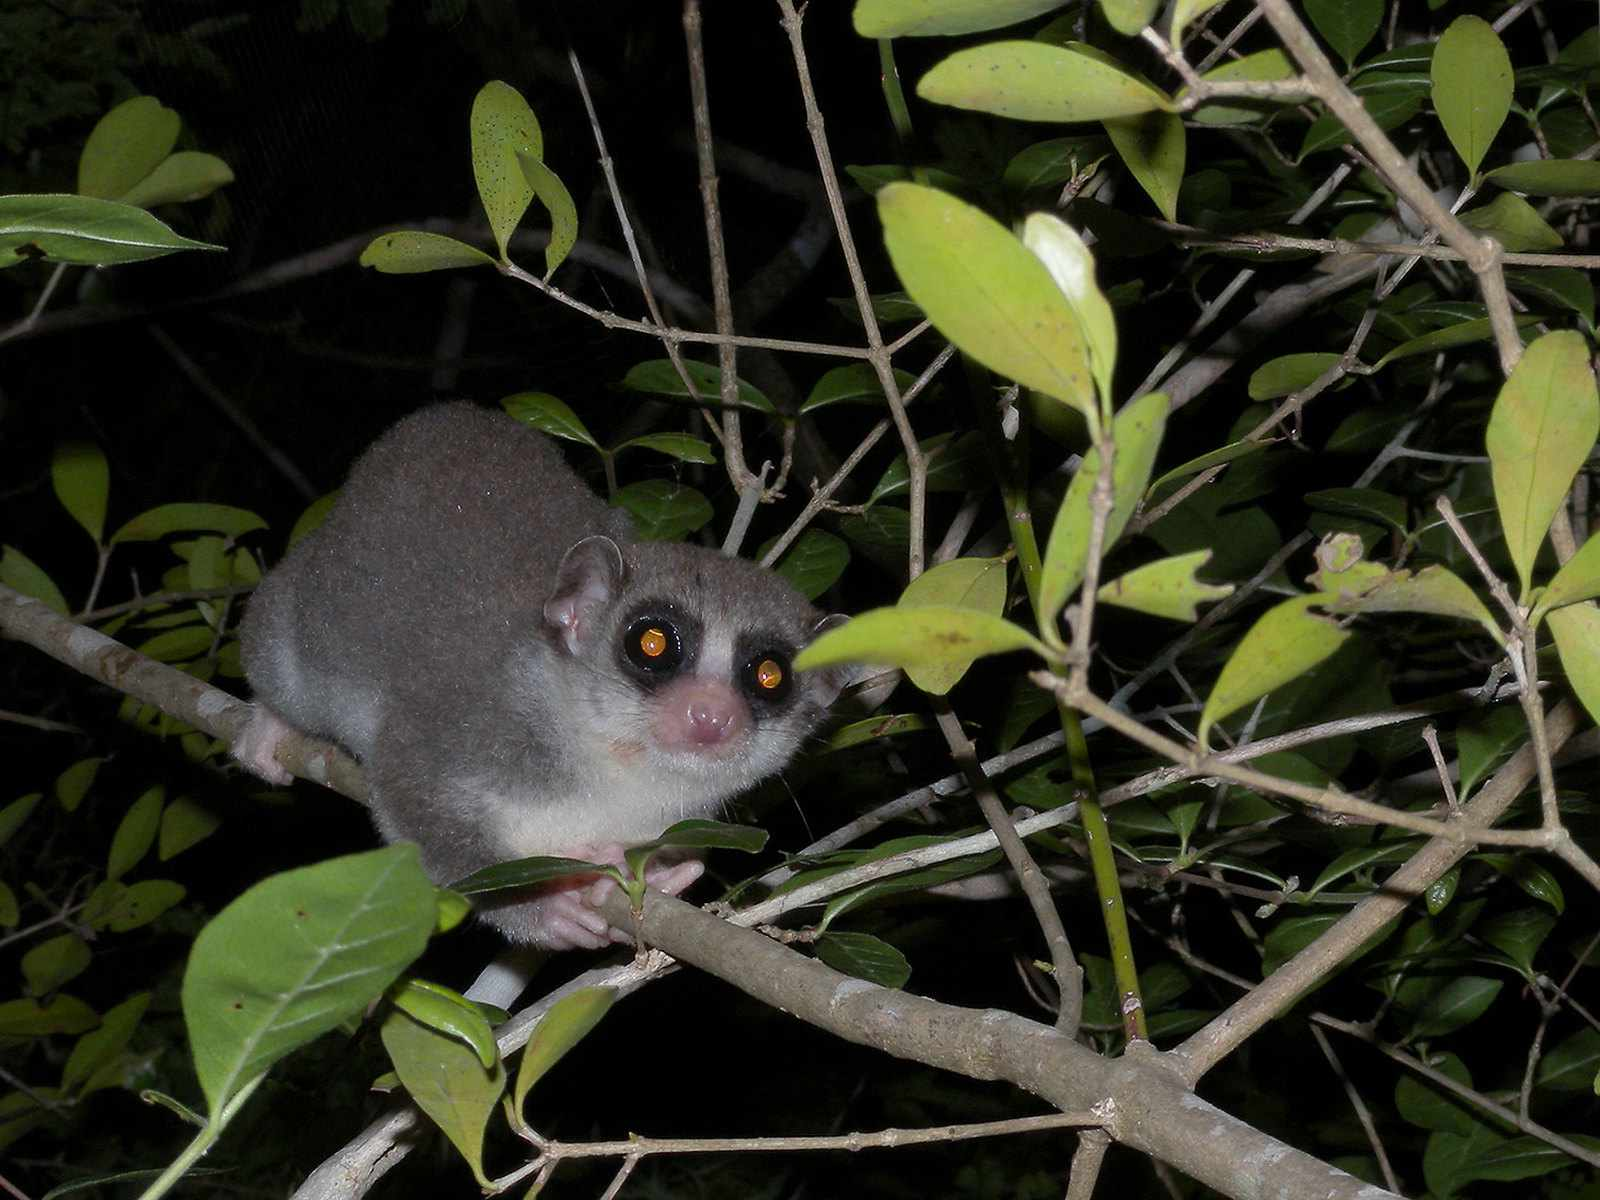 A fat-tailed dwarf lemur holding onto a tree branch.